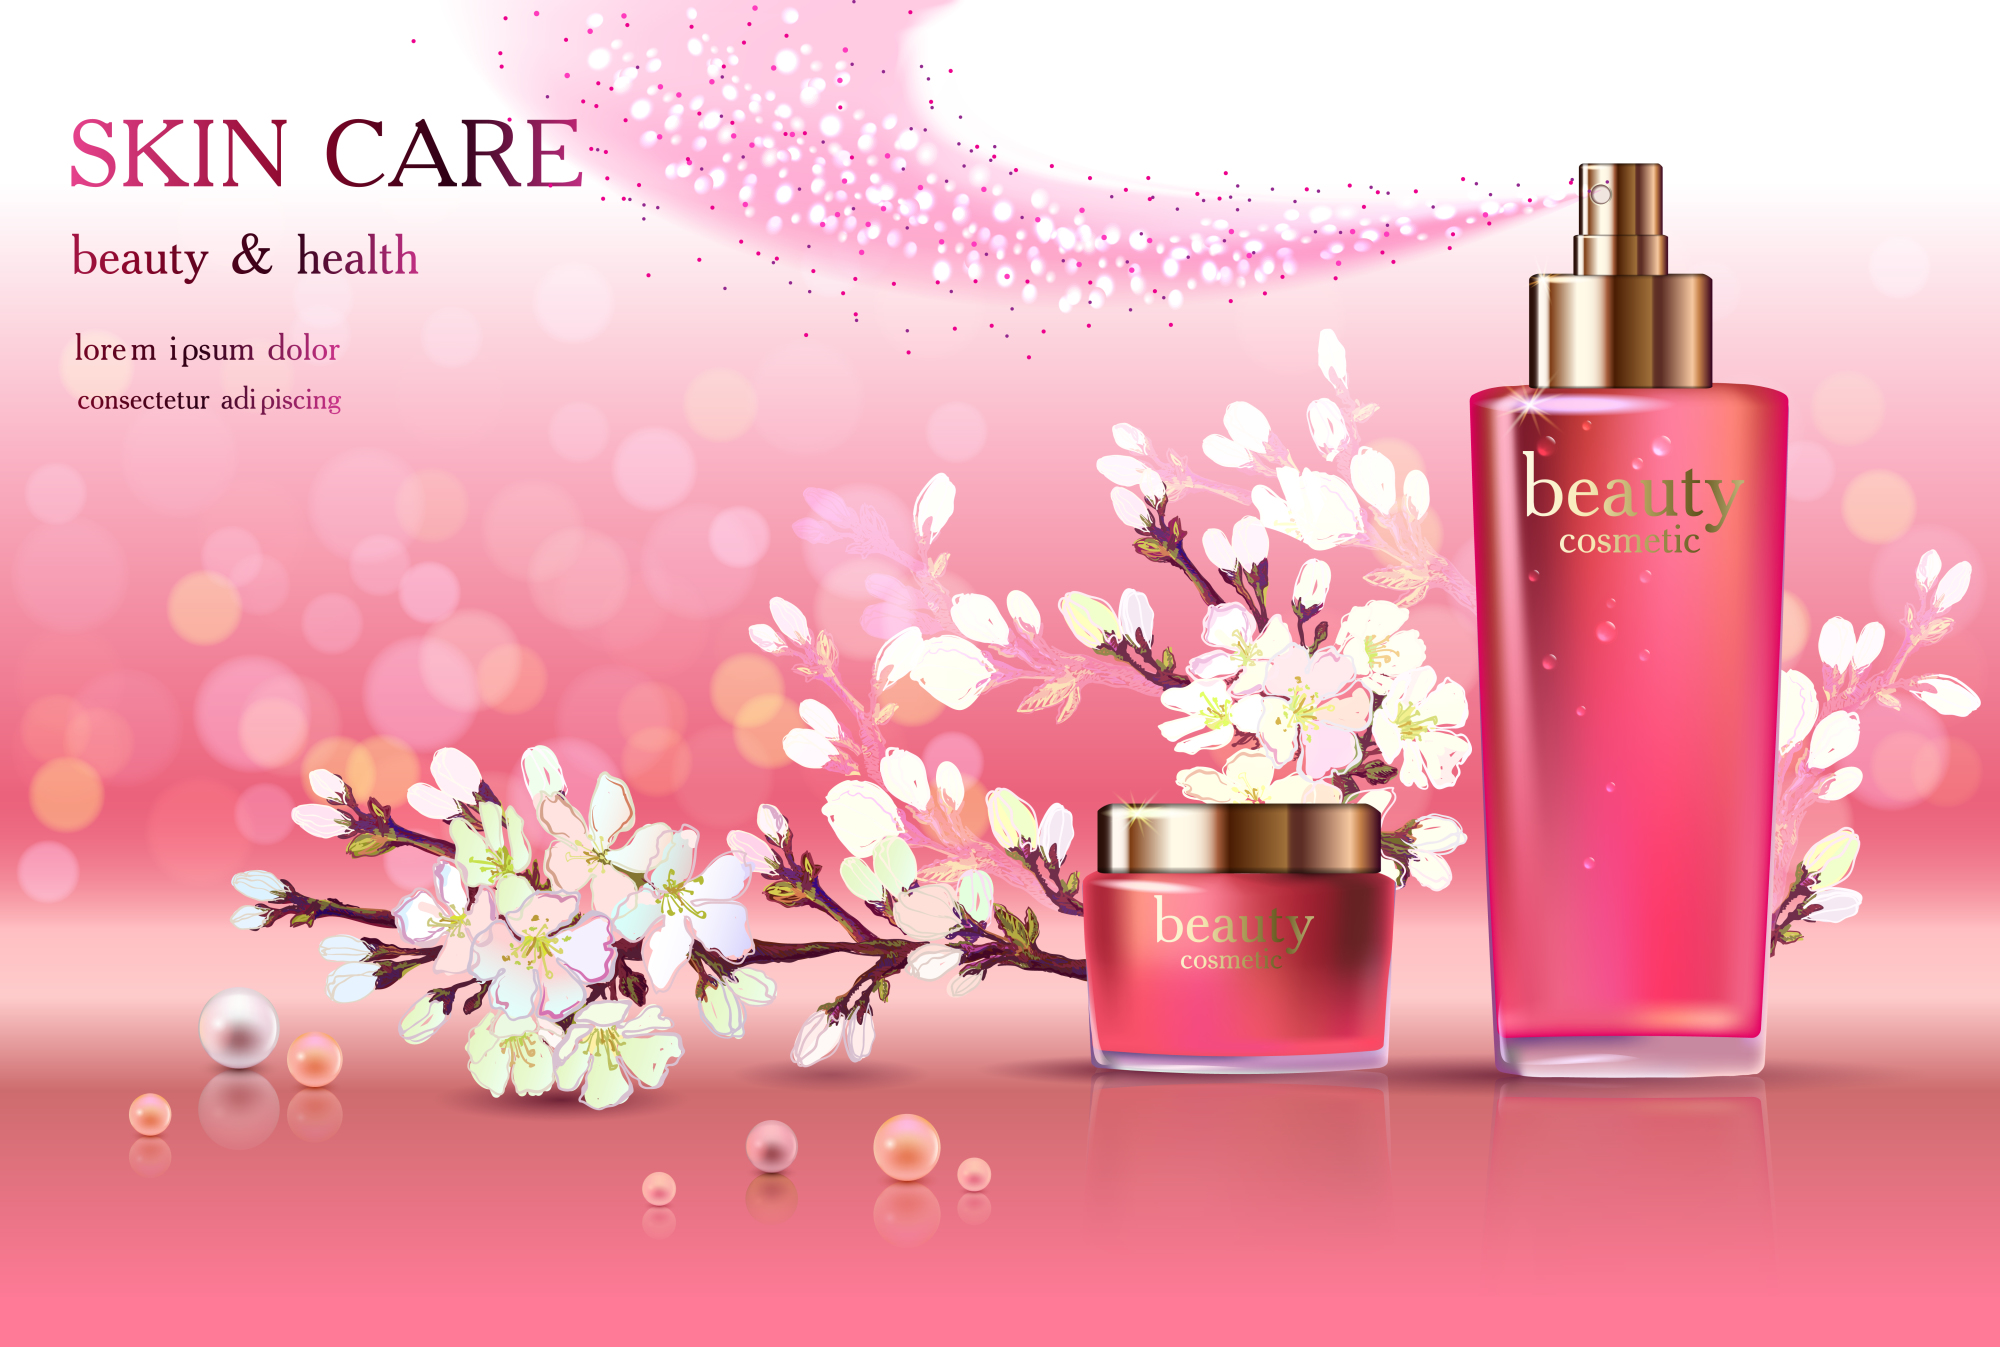 Cosmetic ads with cherry blossom (15866) | Branding ...